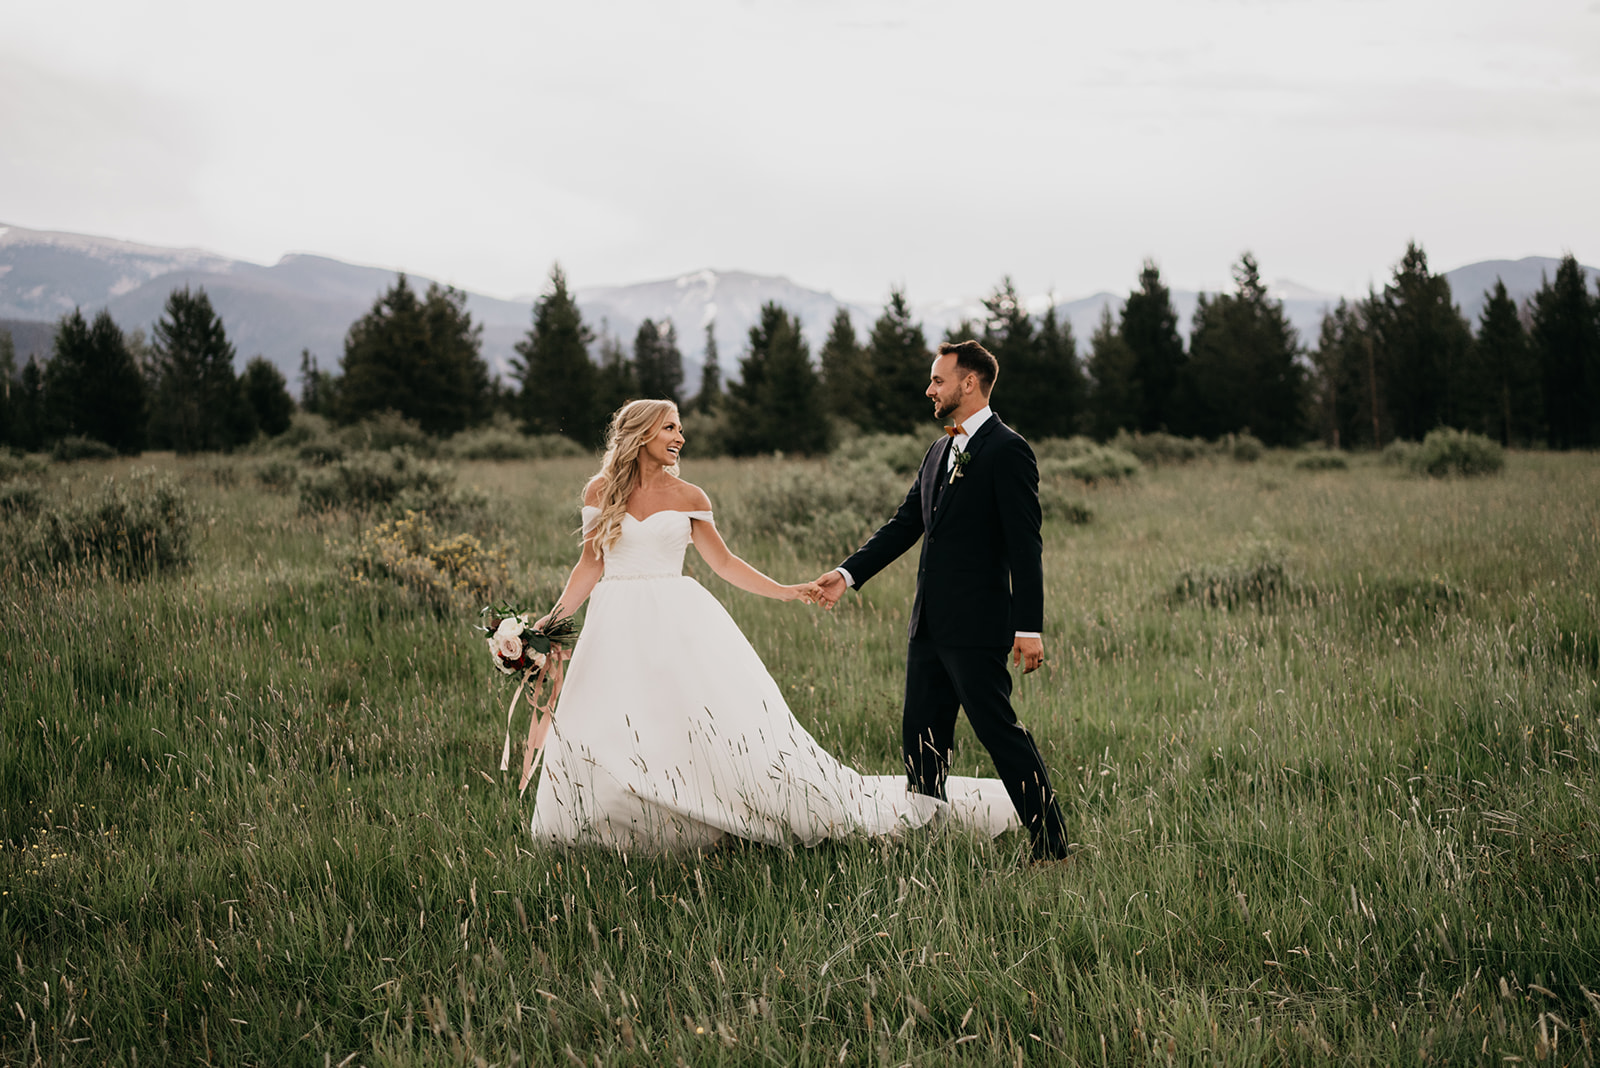 A couple smiling after their mountain wedding